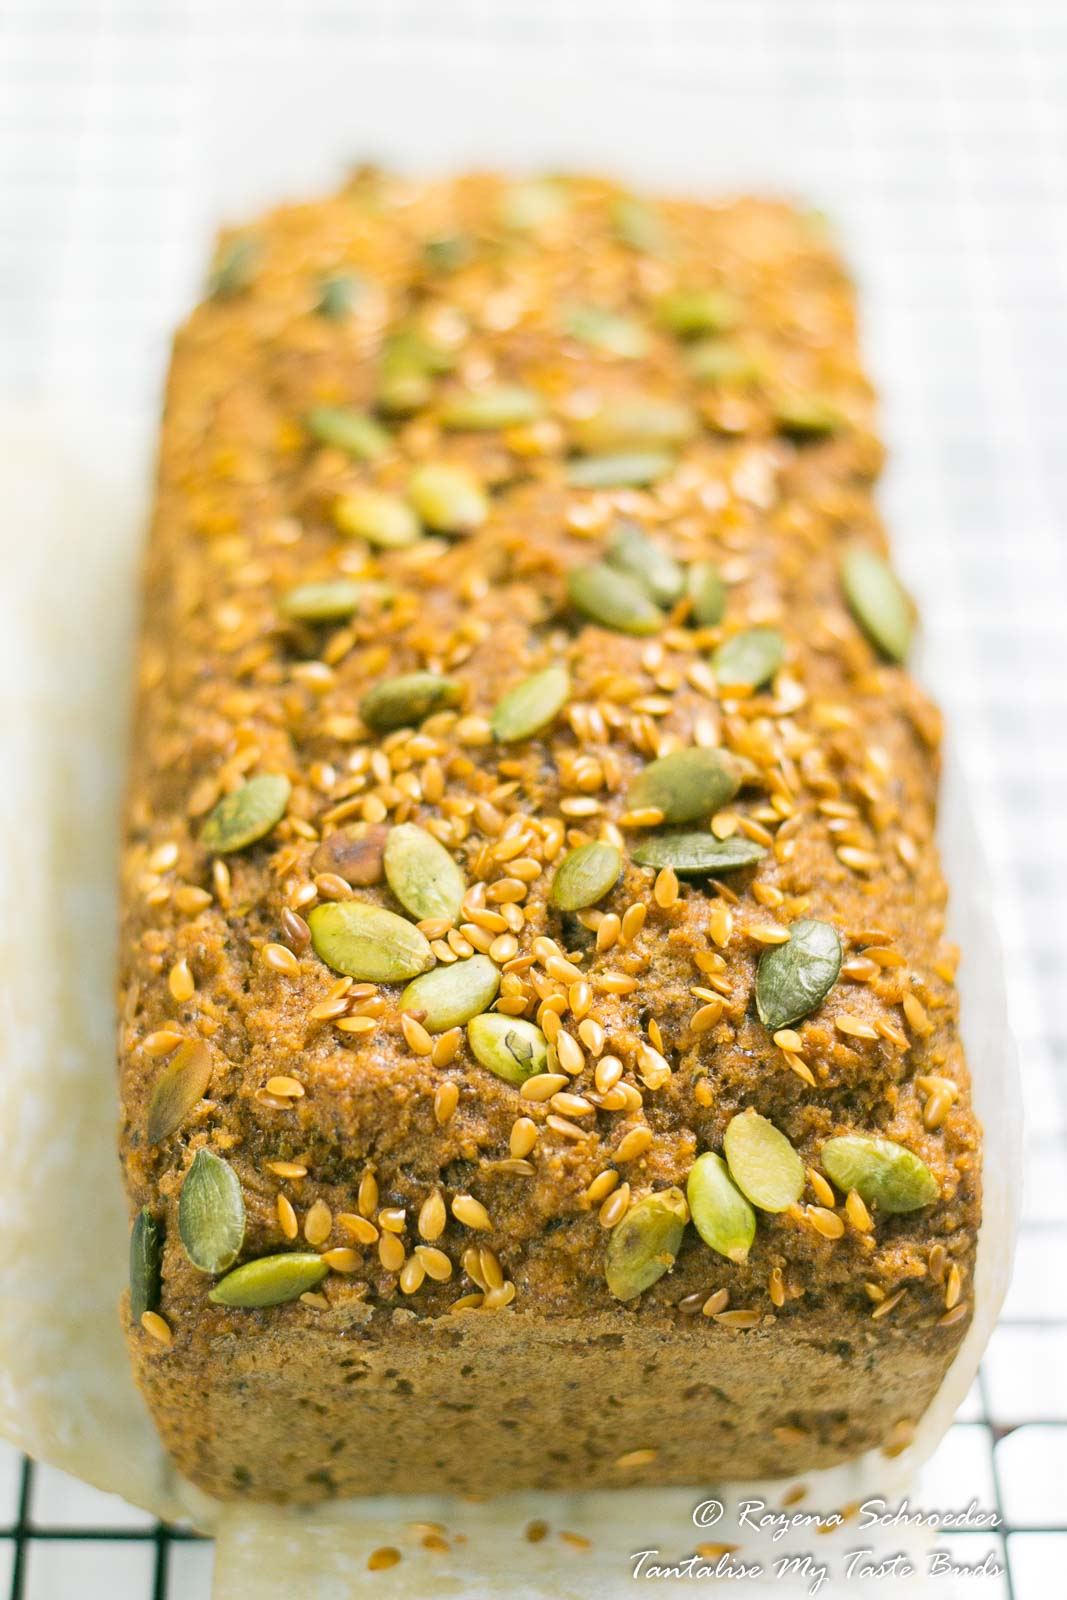 Almond and Coconut bread